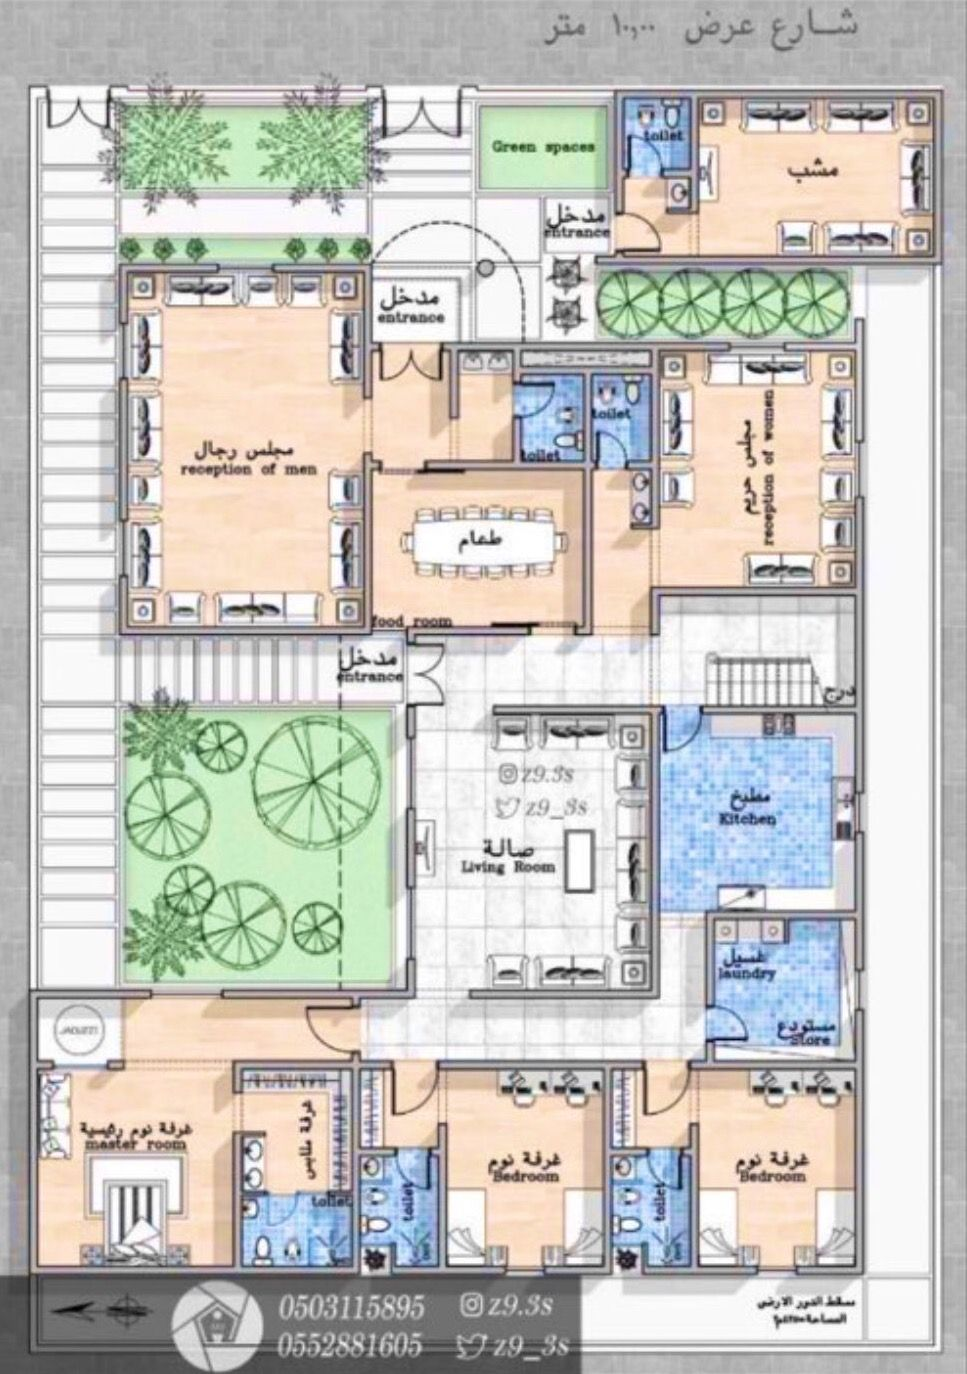 Residential House Layout Plans Architectural Floor Plans Model House Plan